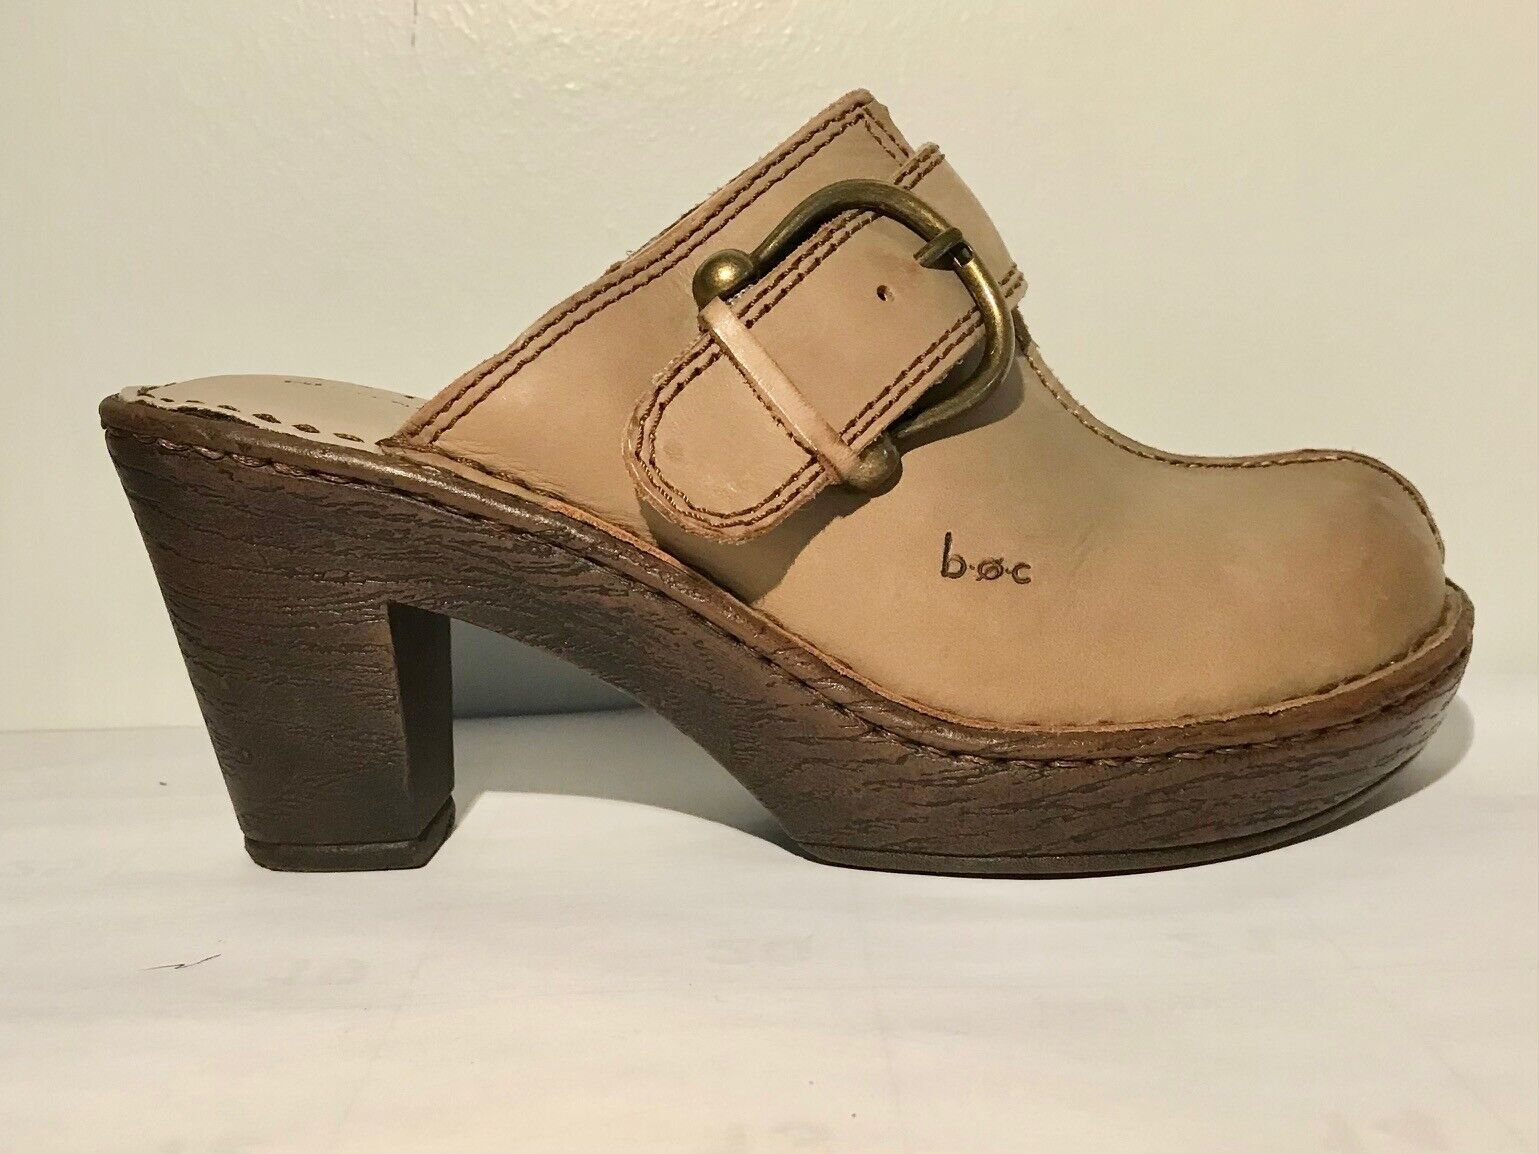 Born Leather Gray Sandals w/buckles Size 7/38 Was… - image 1